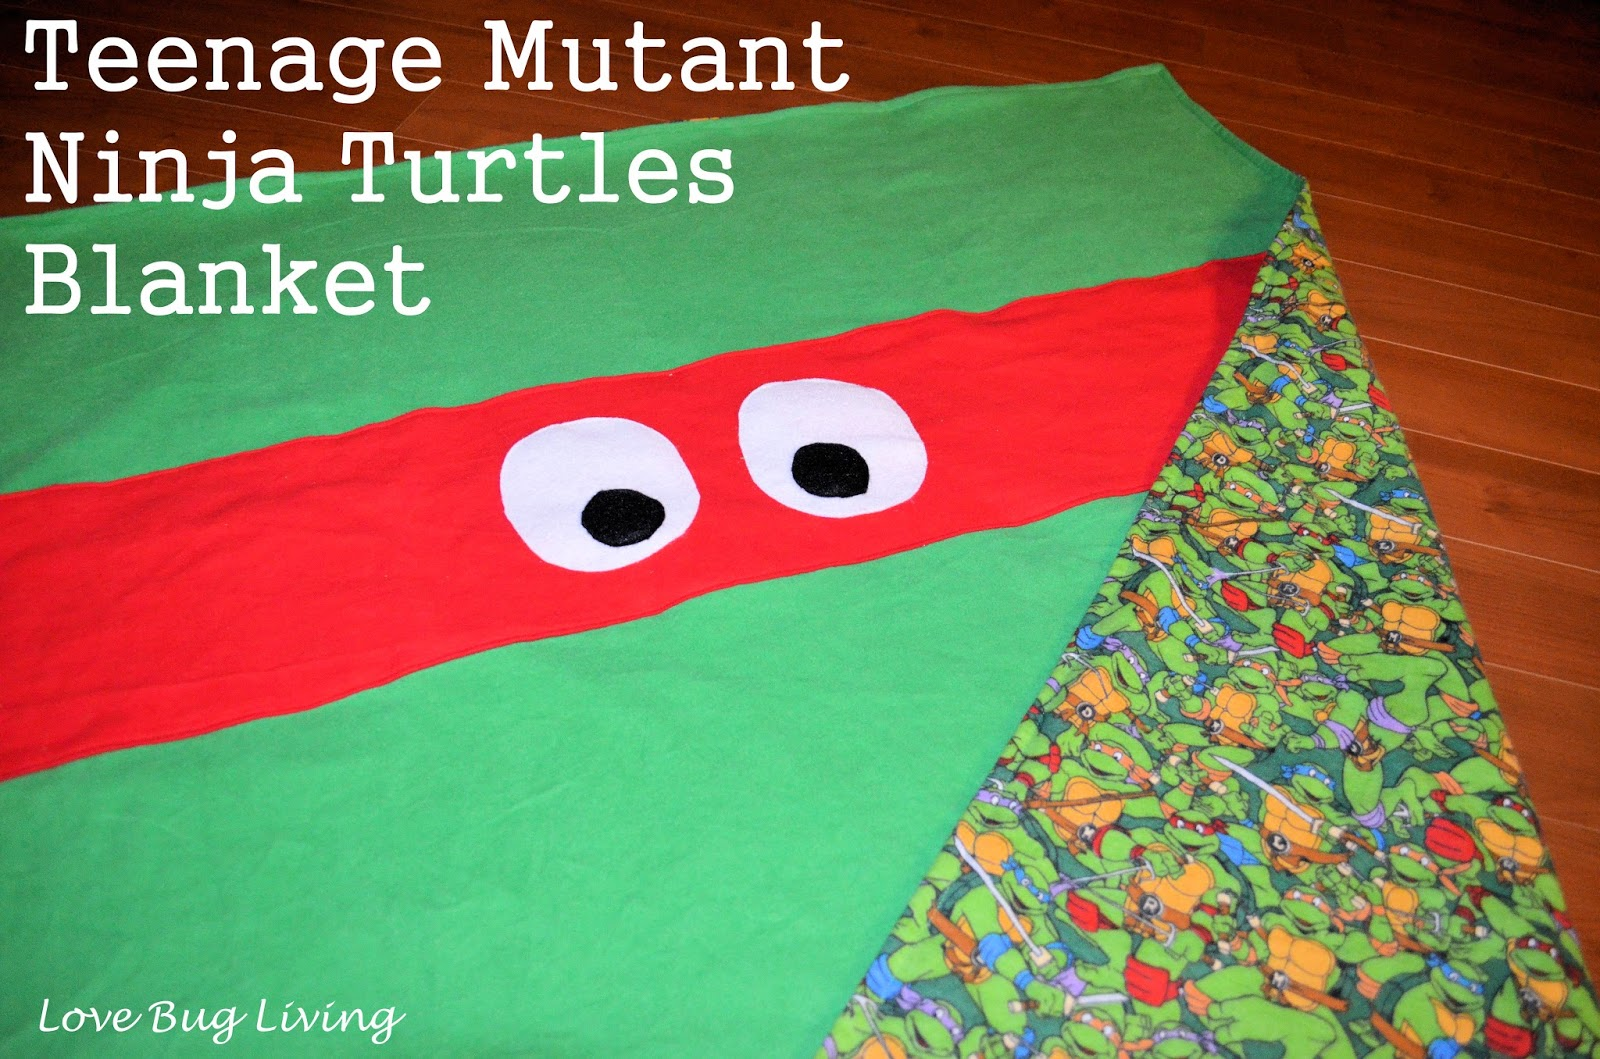 Love Bug Living Teenage Mutant Ninja Turtle Blanket